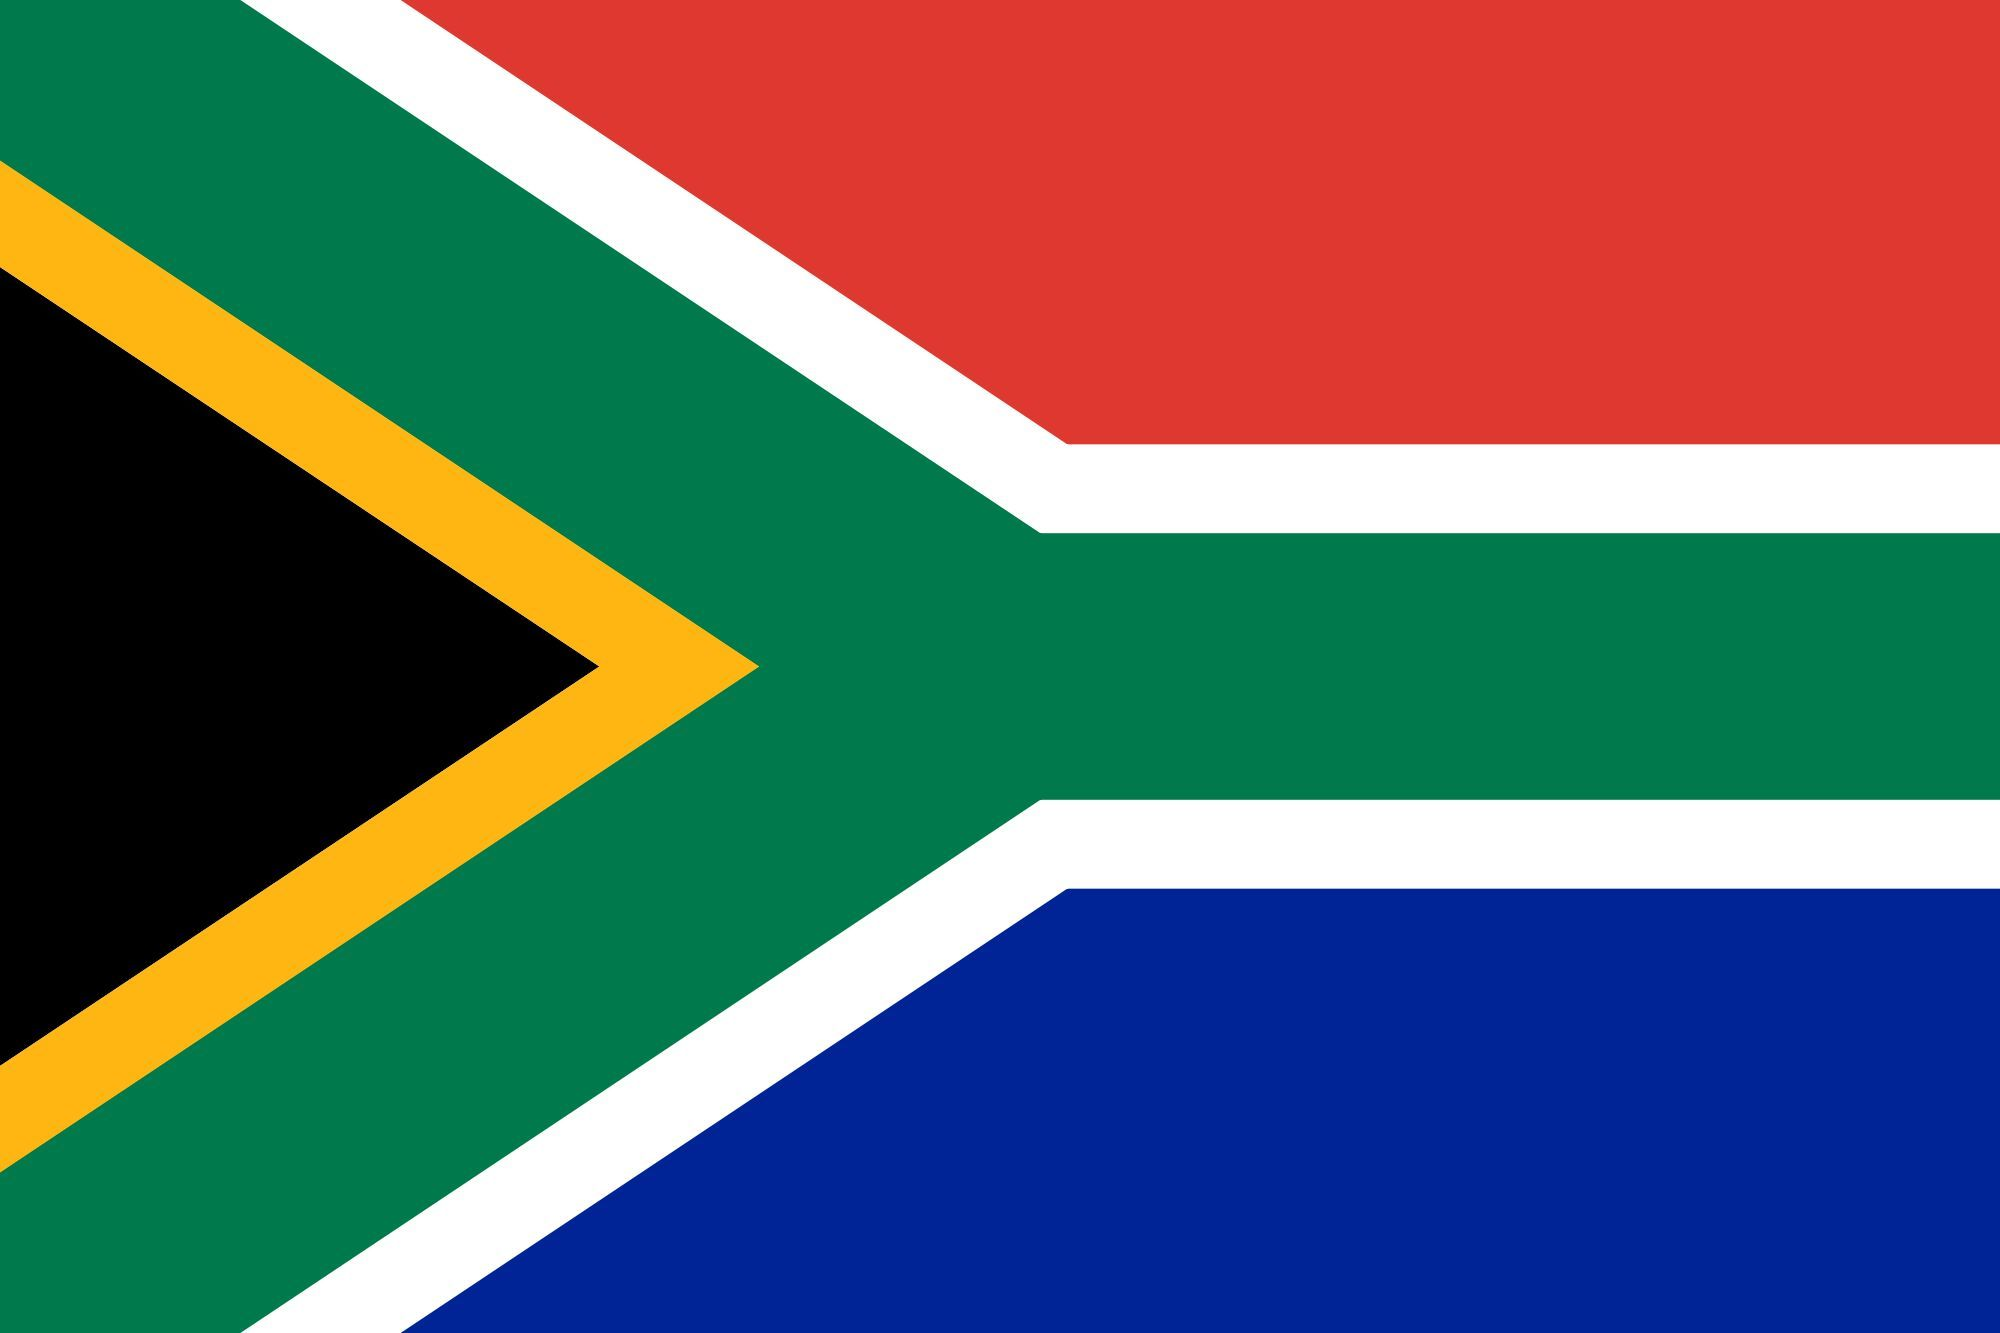 South Africa Is A Country In The World South Africa Flag South African Flag Africa Flag [ 1333 x 2000 Pixel ]